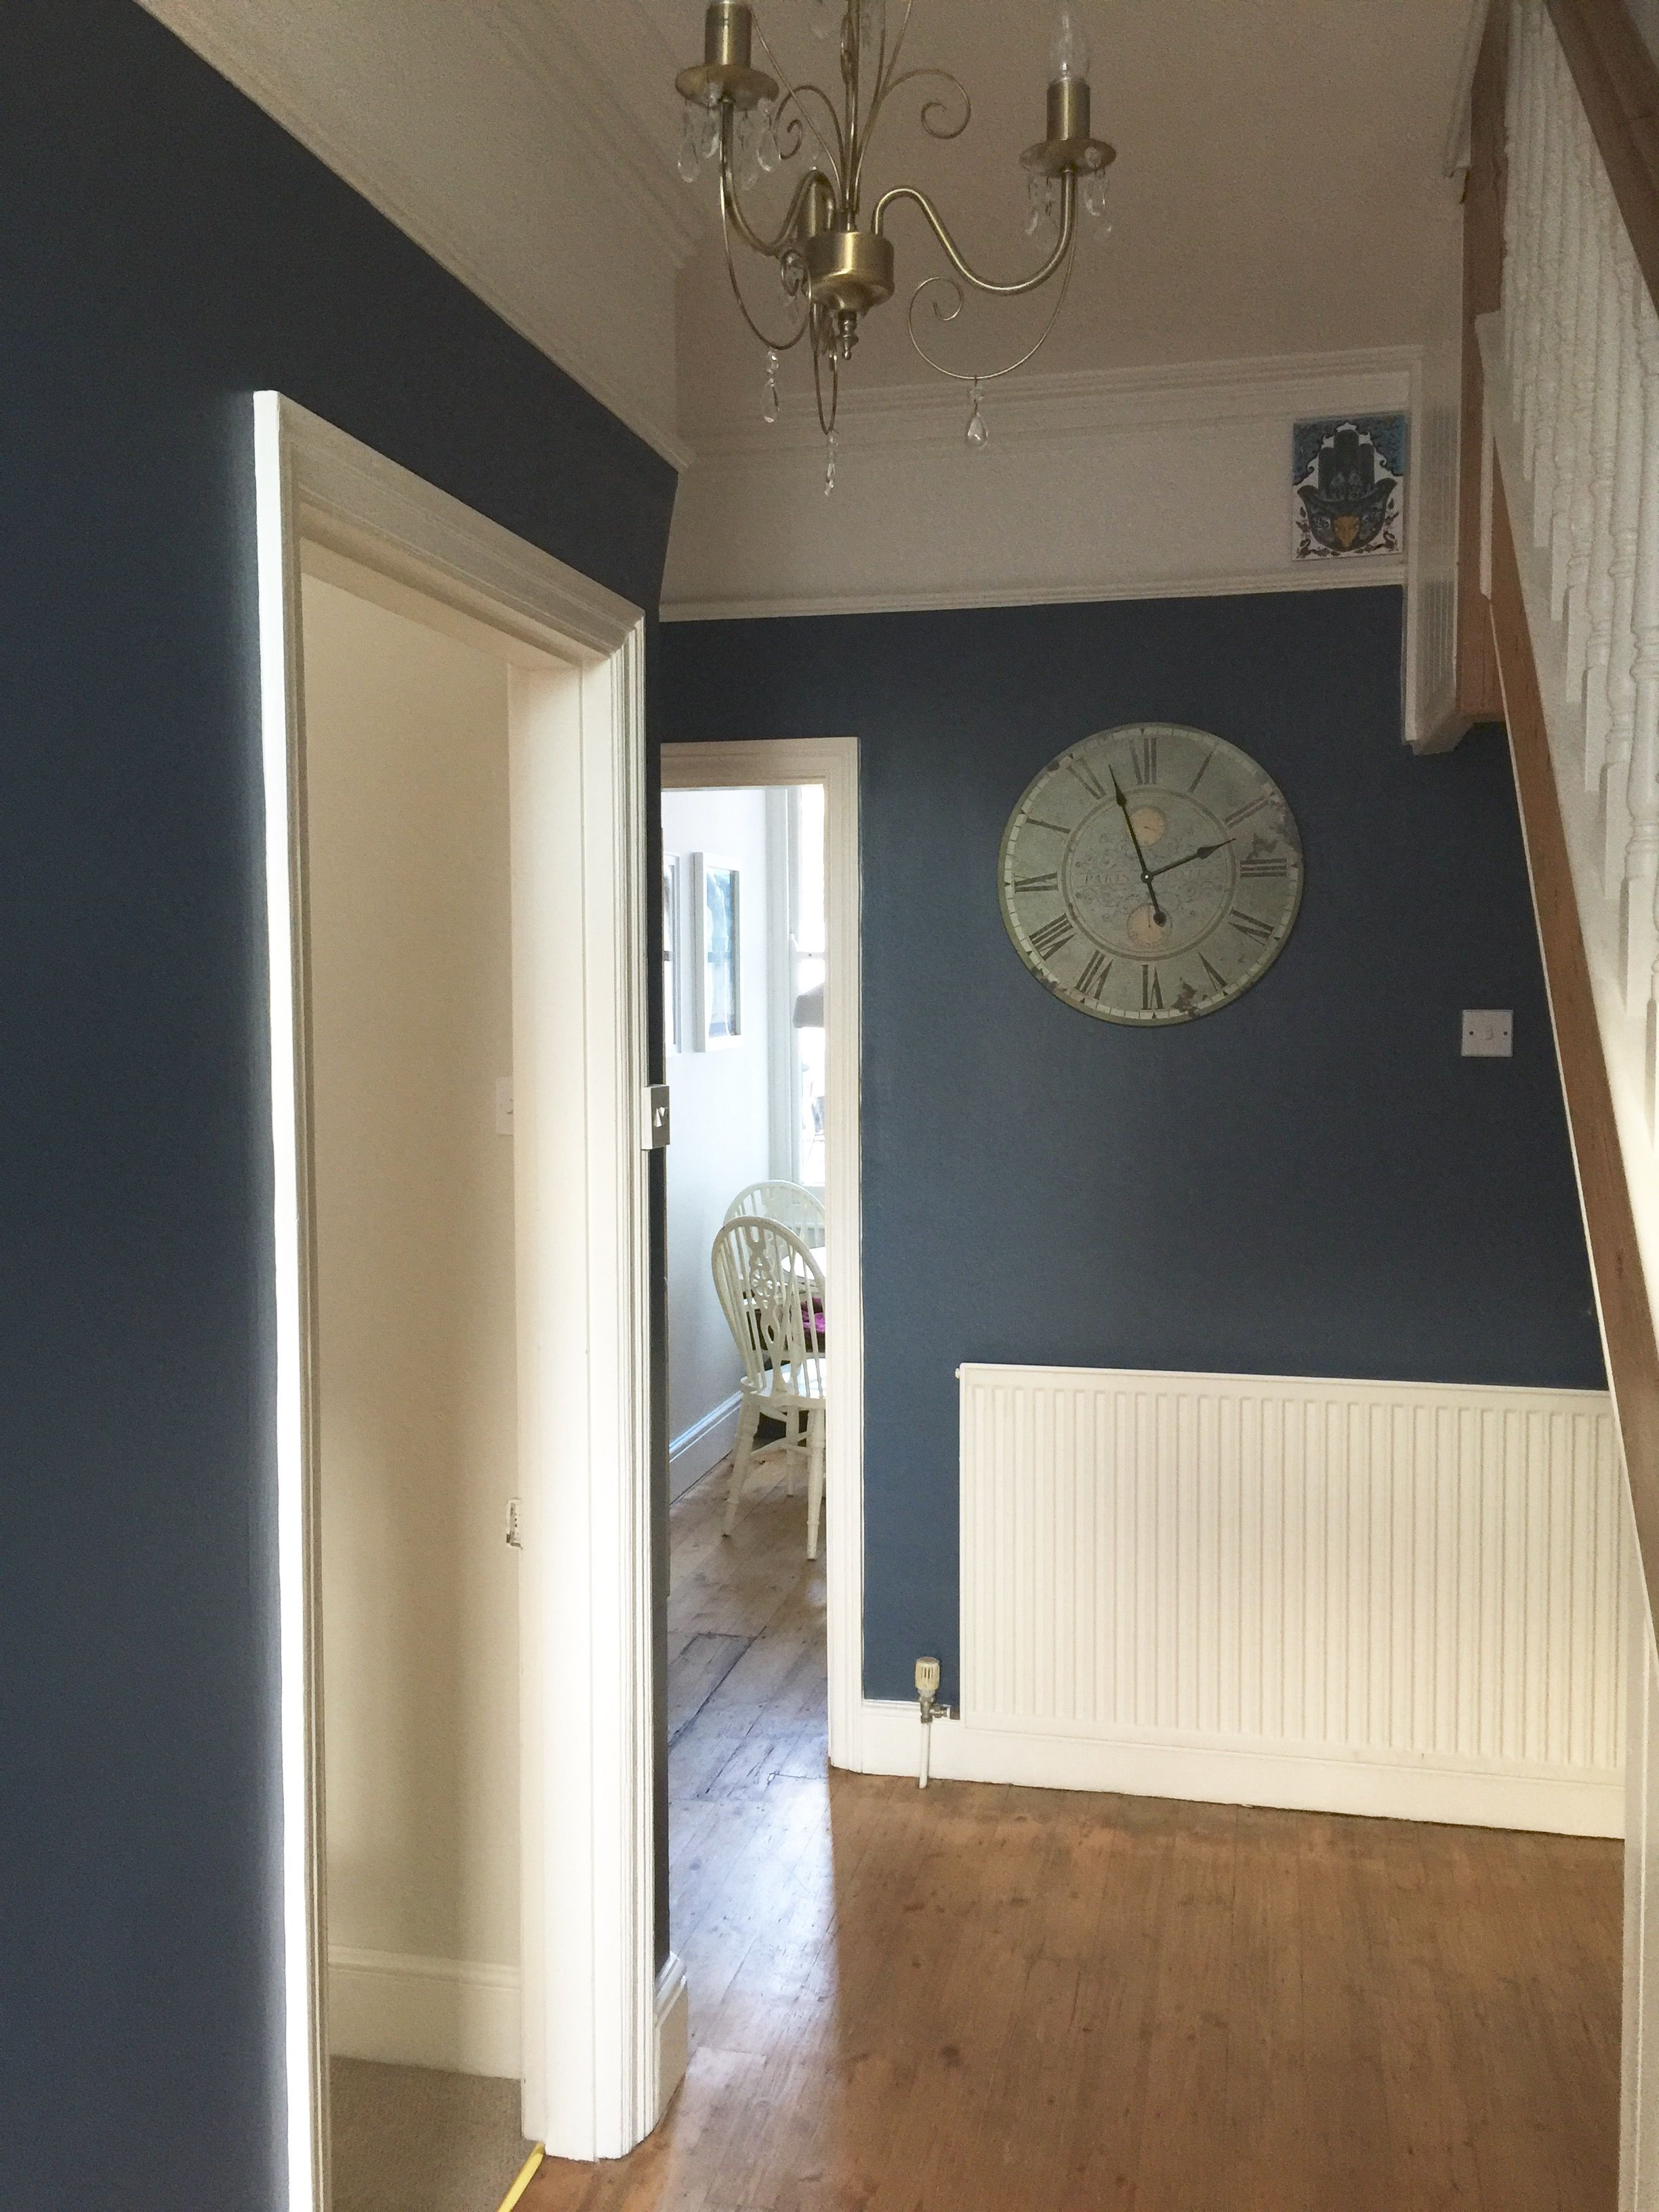 Our Hallway Farrow Ball Stiffkey Blue Love It Now Need To Fix